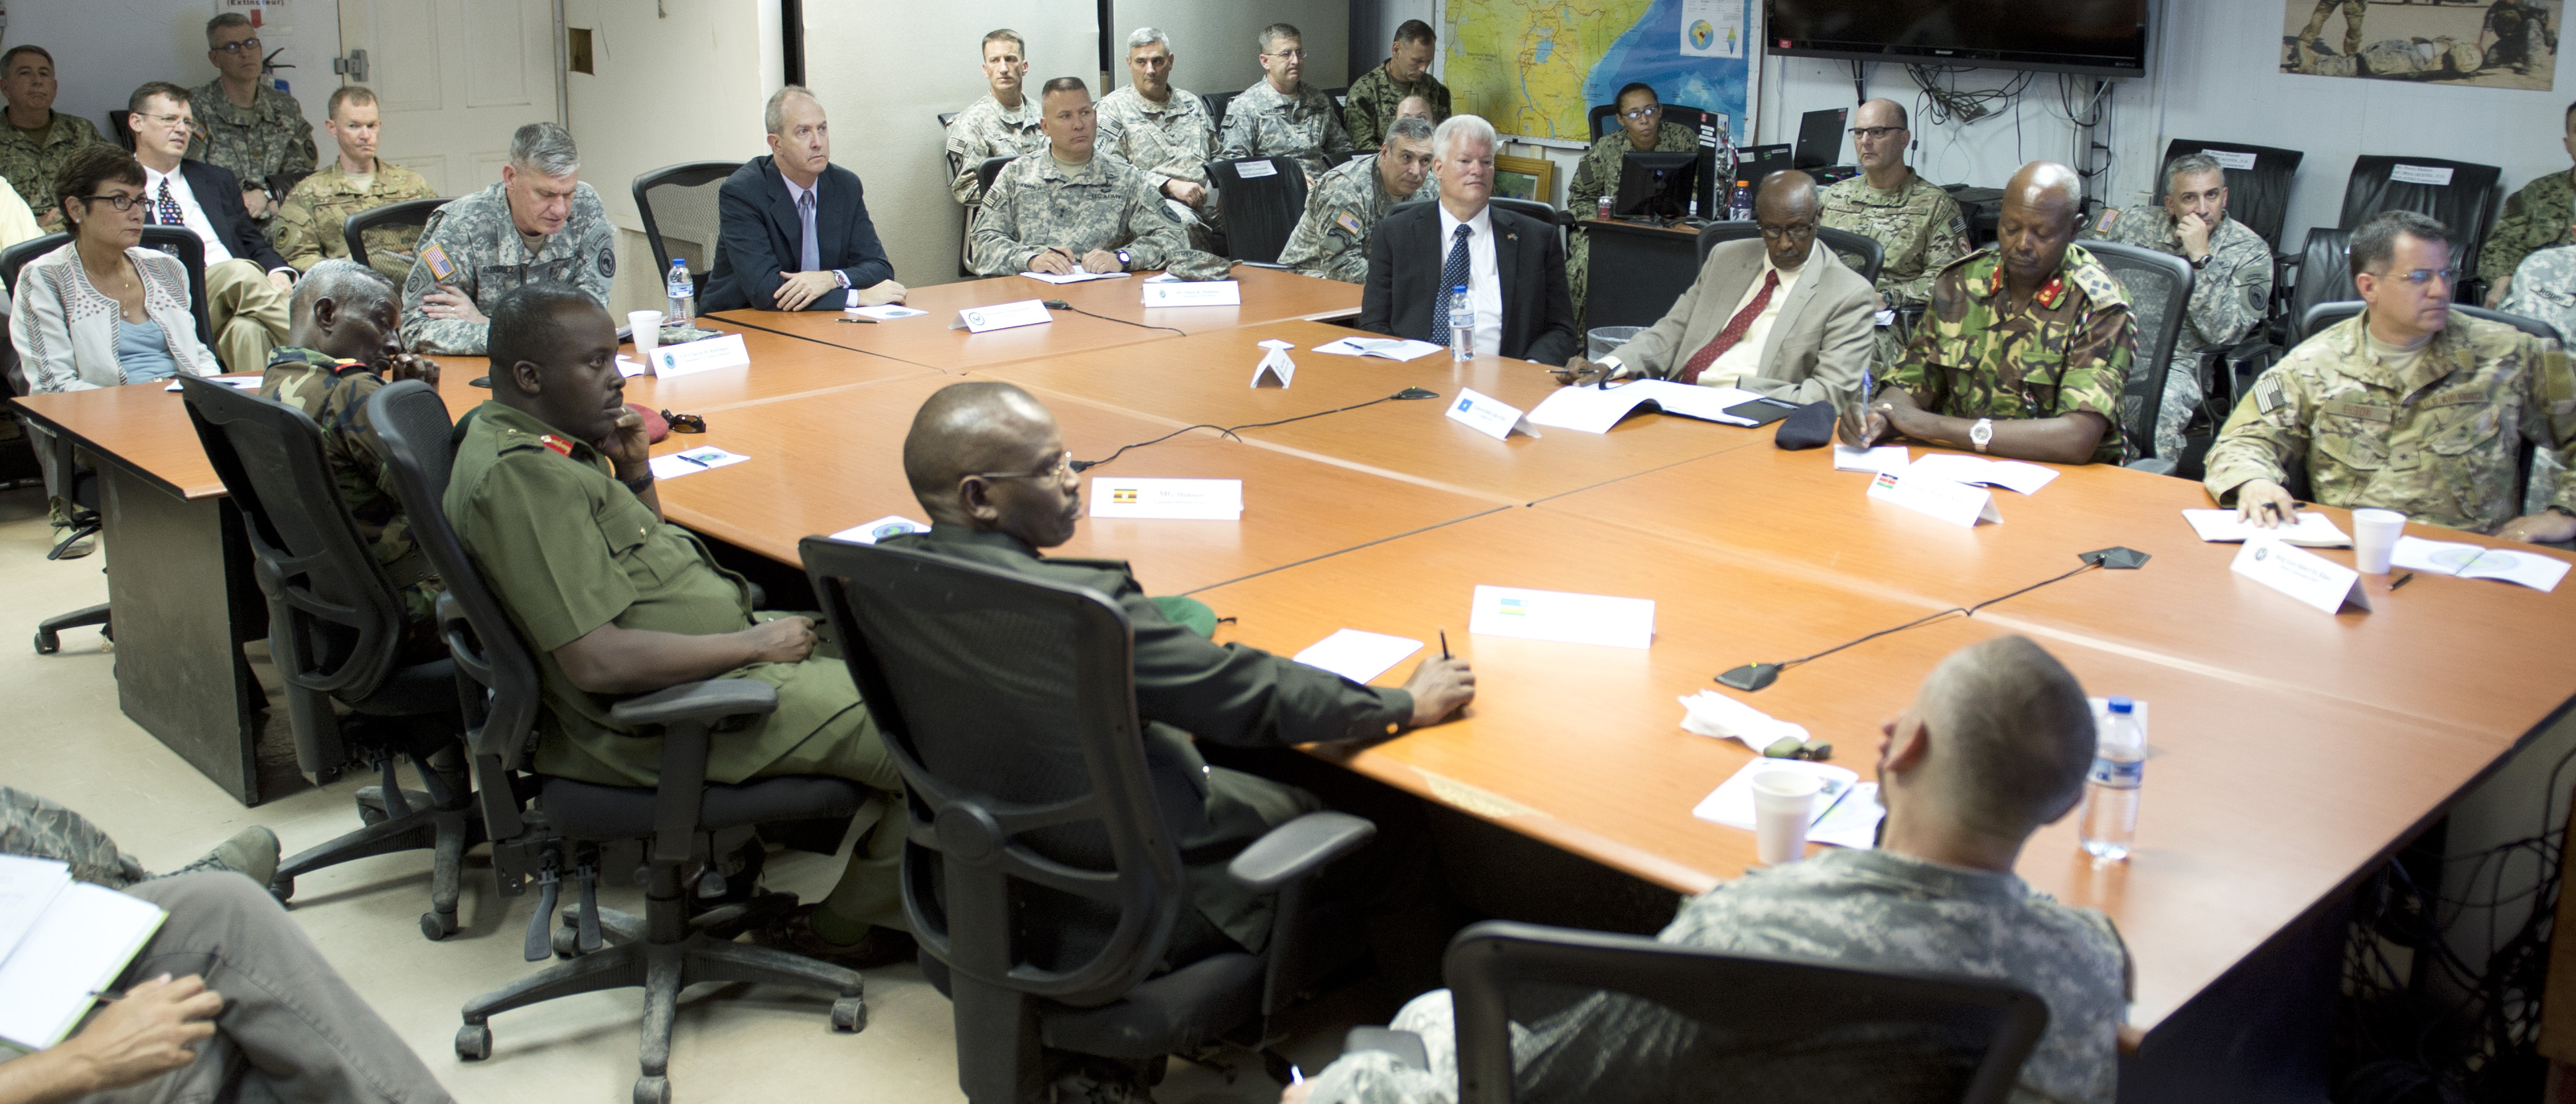 U.S. Army General David Rodriguez, U.S. Africa Command commander, host an East Africa Joint Interagency, Intergovernmental, and Multinational conference at Camp Lemonnier, Djibouti, April 14, 2015.  The event was a forum for regional U.S. Embassy and East African partner nation representatives to gain greater insight into each other's goals and objectives within the East Africa region. The event also provided an opportunity for Rodriguez to introduce his new Combined Joint Task Force-Horn of Africa Commander, U.S. Army Maj. Gen. Mark Stammer, to the regional U.S. Embassy and East African partner nation representatives. (U.S. Air Force photo by Staff Sgt. Kevin Iinuma)